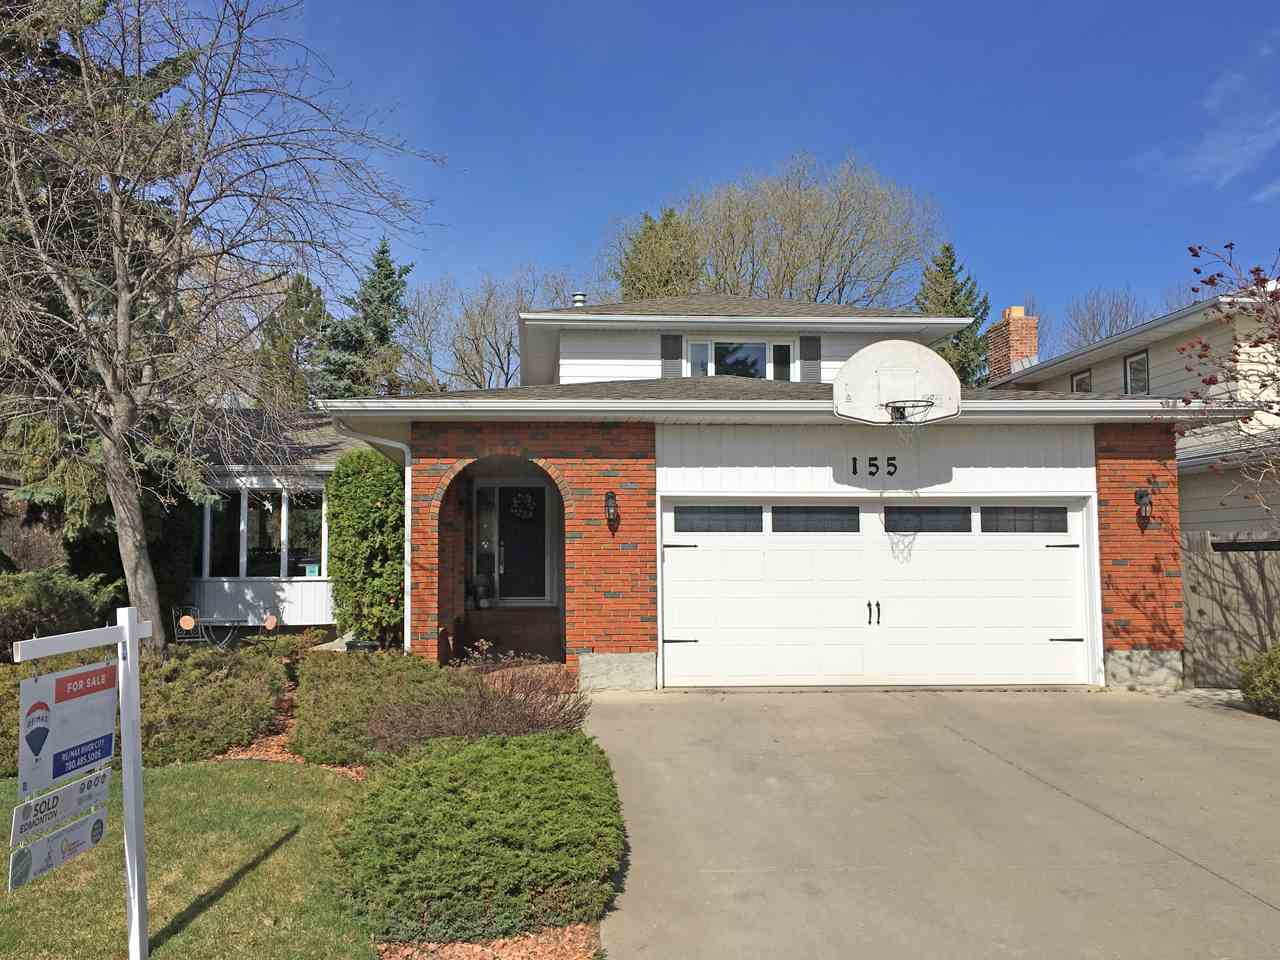 An amazing family home in the River Valley community of Lessard! 7 Reasons this is home: 1) YARD - the back yard is like a park, beautifully treed with stamped concrete patio and 3-season sun room. 2) CURB APPEAL - the front yard of this home has a private sitting area, perfect for sunny morning coffee, and is beautifully landscaped. 3) UPGRADES: newer windows, doors, garage door, and more. 4) UPDATES - hardwood and ceramic tile flooring; renovated main bath, ensuite, and powder room; renovated kitchen with tile back splash, granite counter tops, ceiling-height cabinetry, under-cabinet lighting, and tons of pantry space. 5) BUILT-IN STORAGE - back hall bench and drop zone, family room storage, and extra kitchen shelving/counter spaces! 6) SCHOOL - walk to Centennial Elementary (one of the top ranked schools in the city) and S. Bruce Smith Junior high! 7) RIVER VALLEY - enjoy walking along the river only blocks from home, complete with views of the Terwillegar Dog Park! Come see it for yourself!